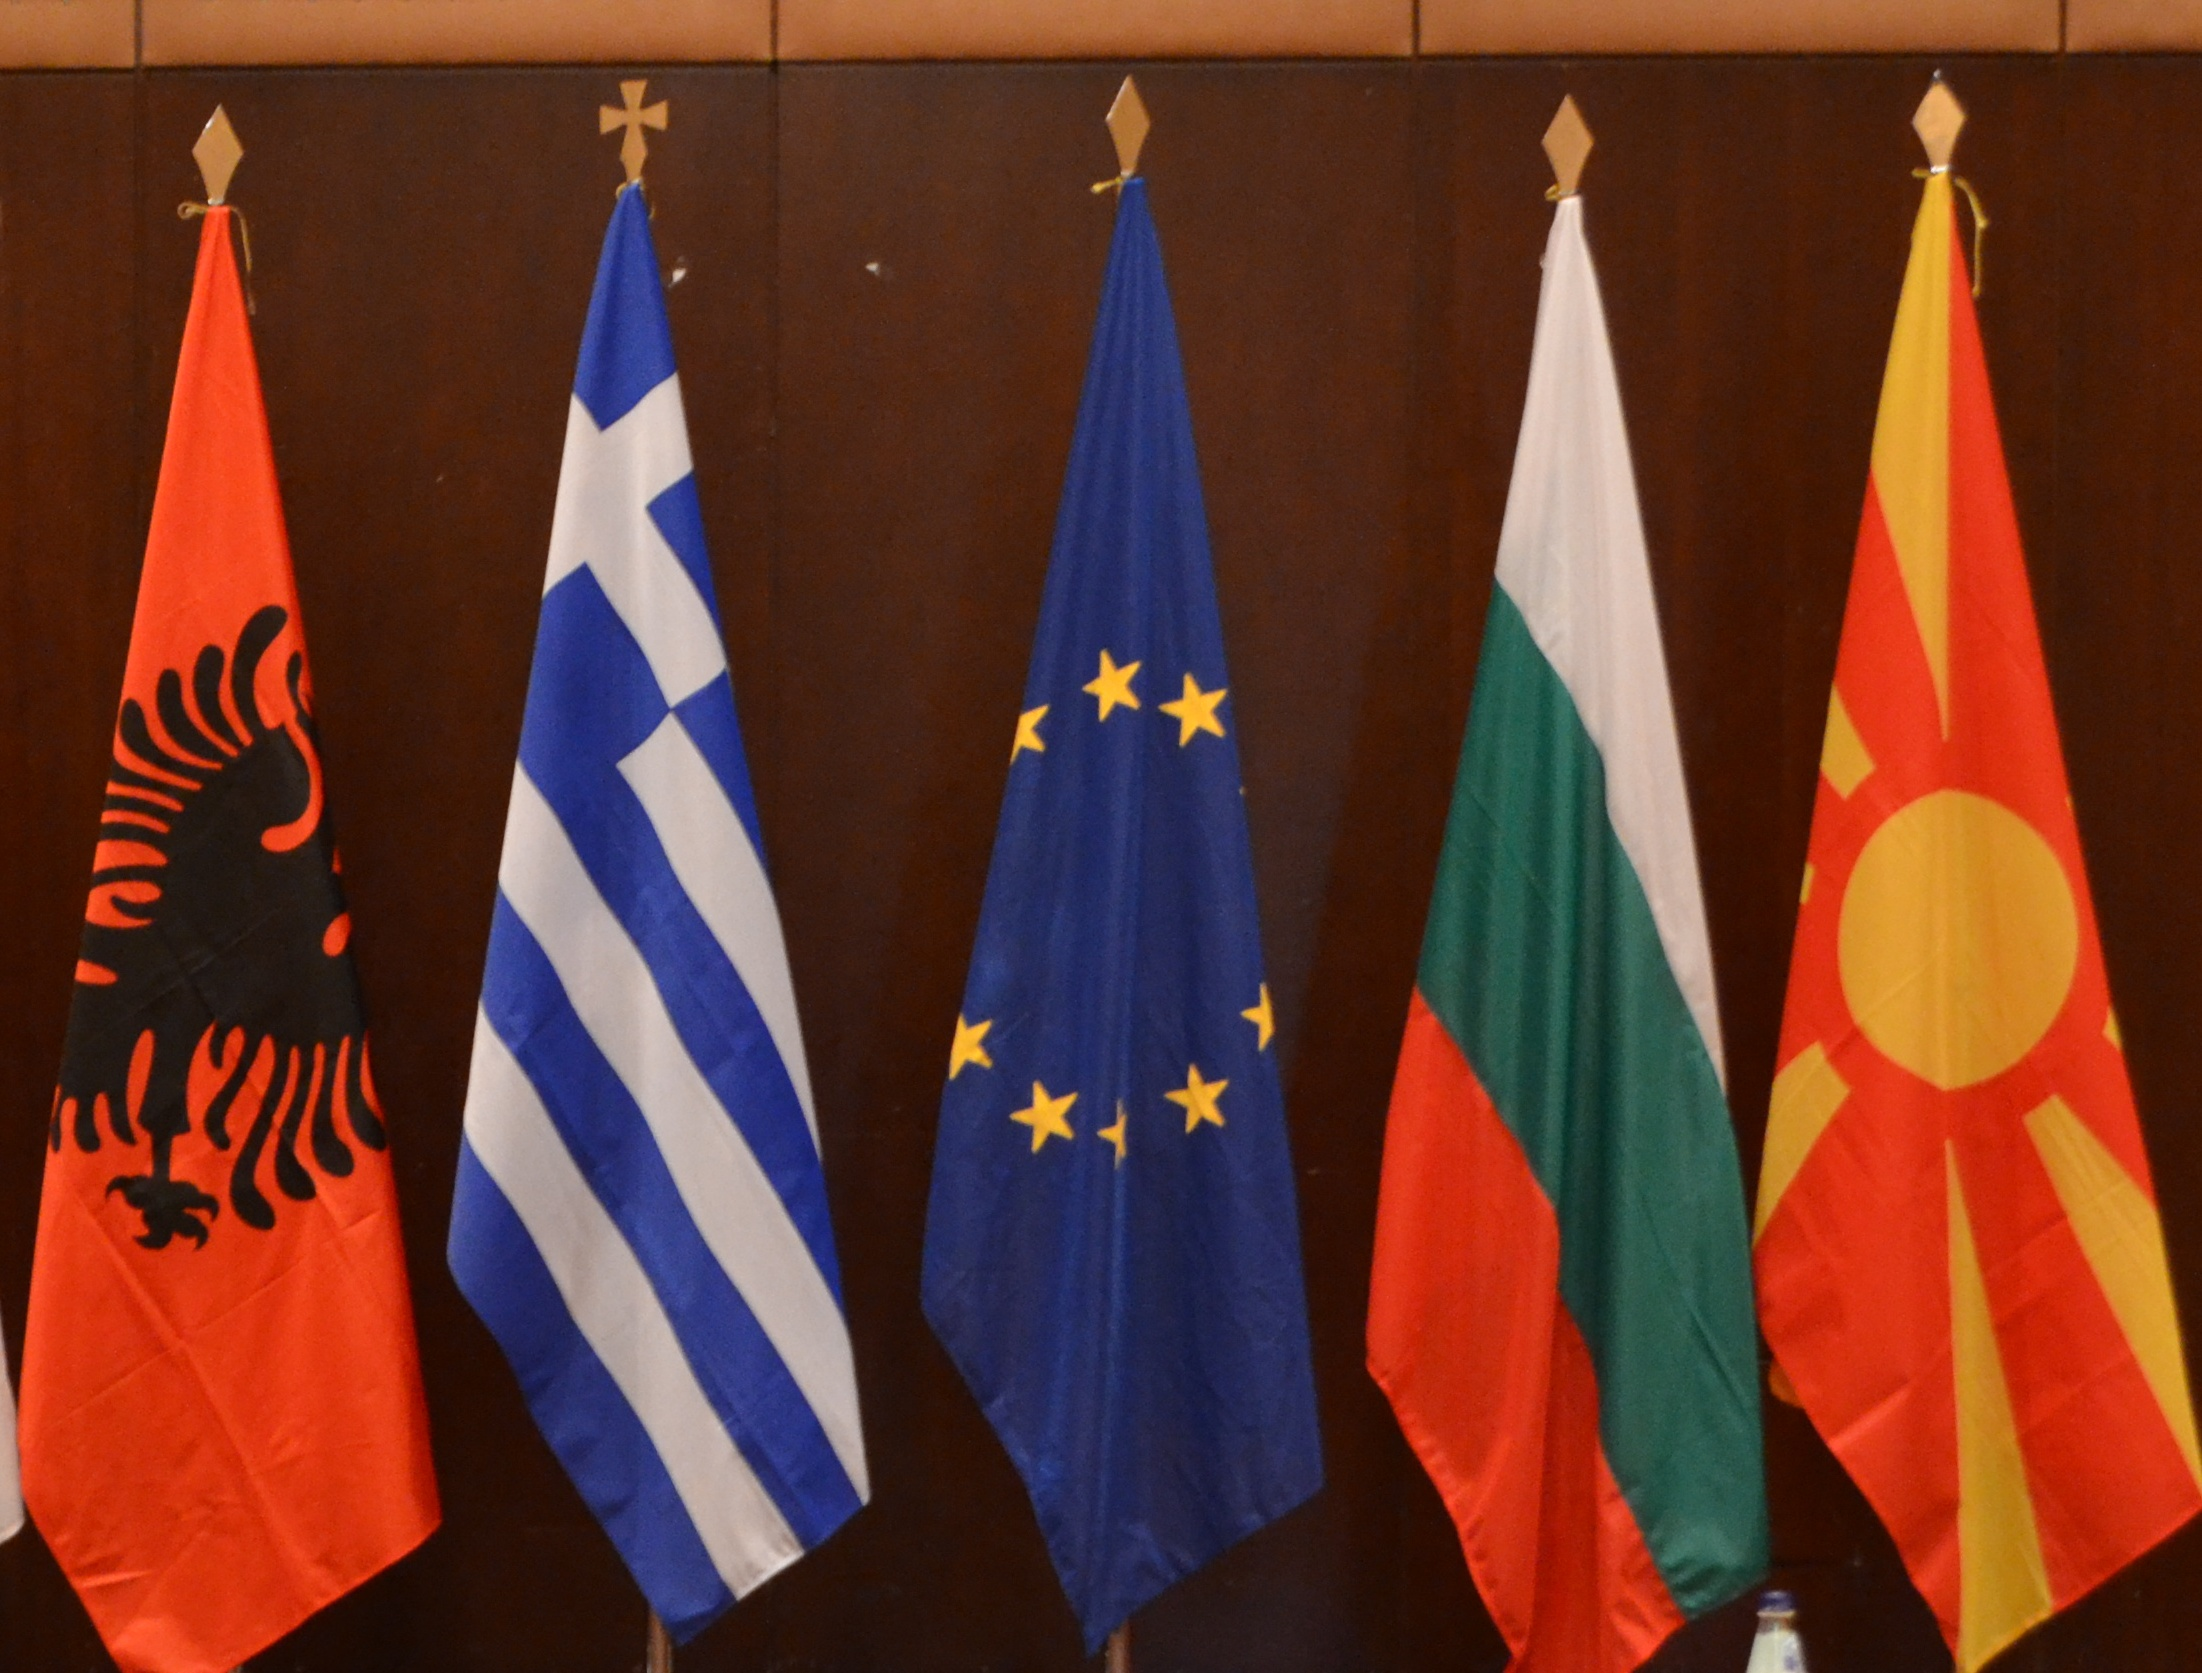 EASC warns on risks of not opening EU membership talks with North Macedonia